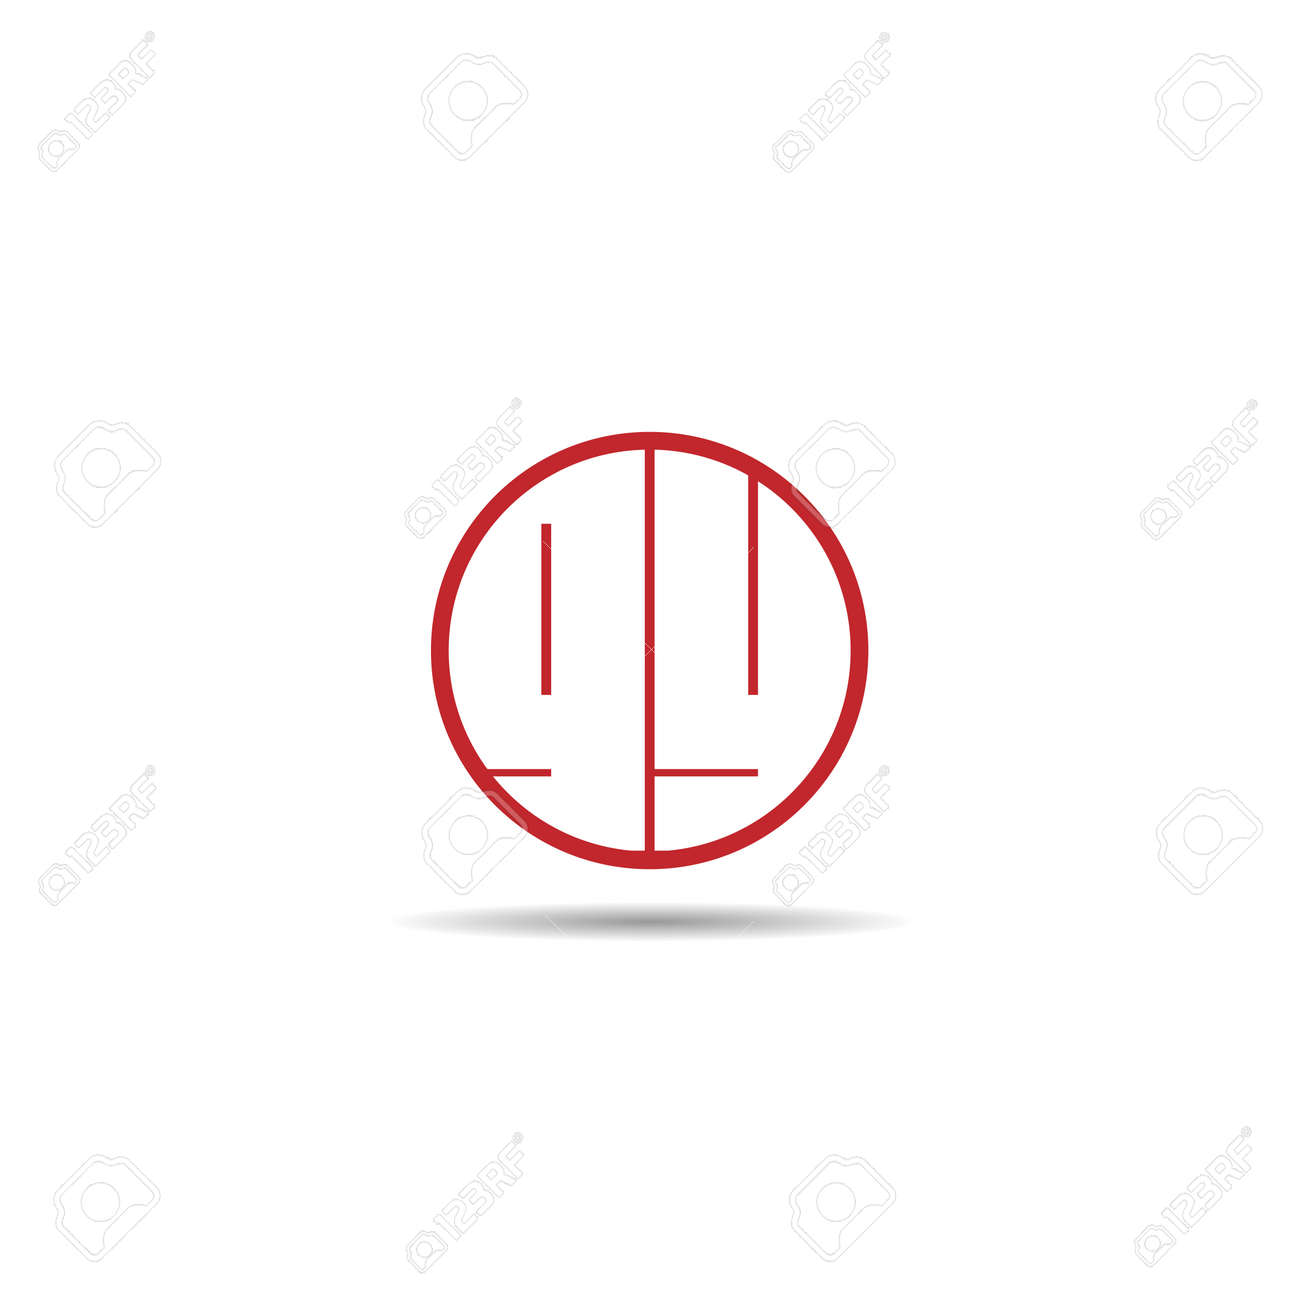 Initial Letter GY Logo Template Design - 125496274